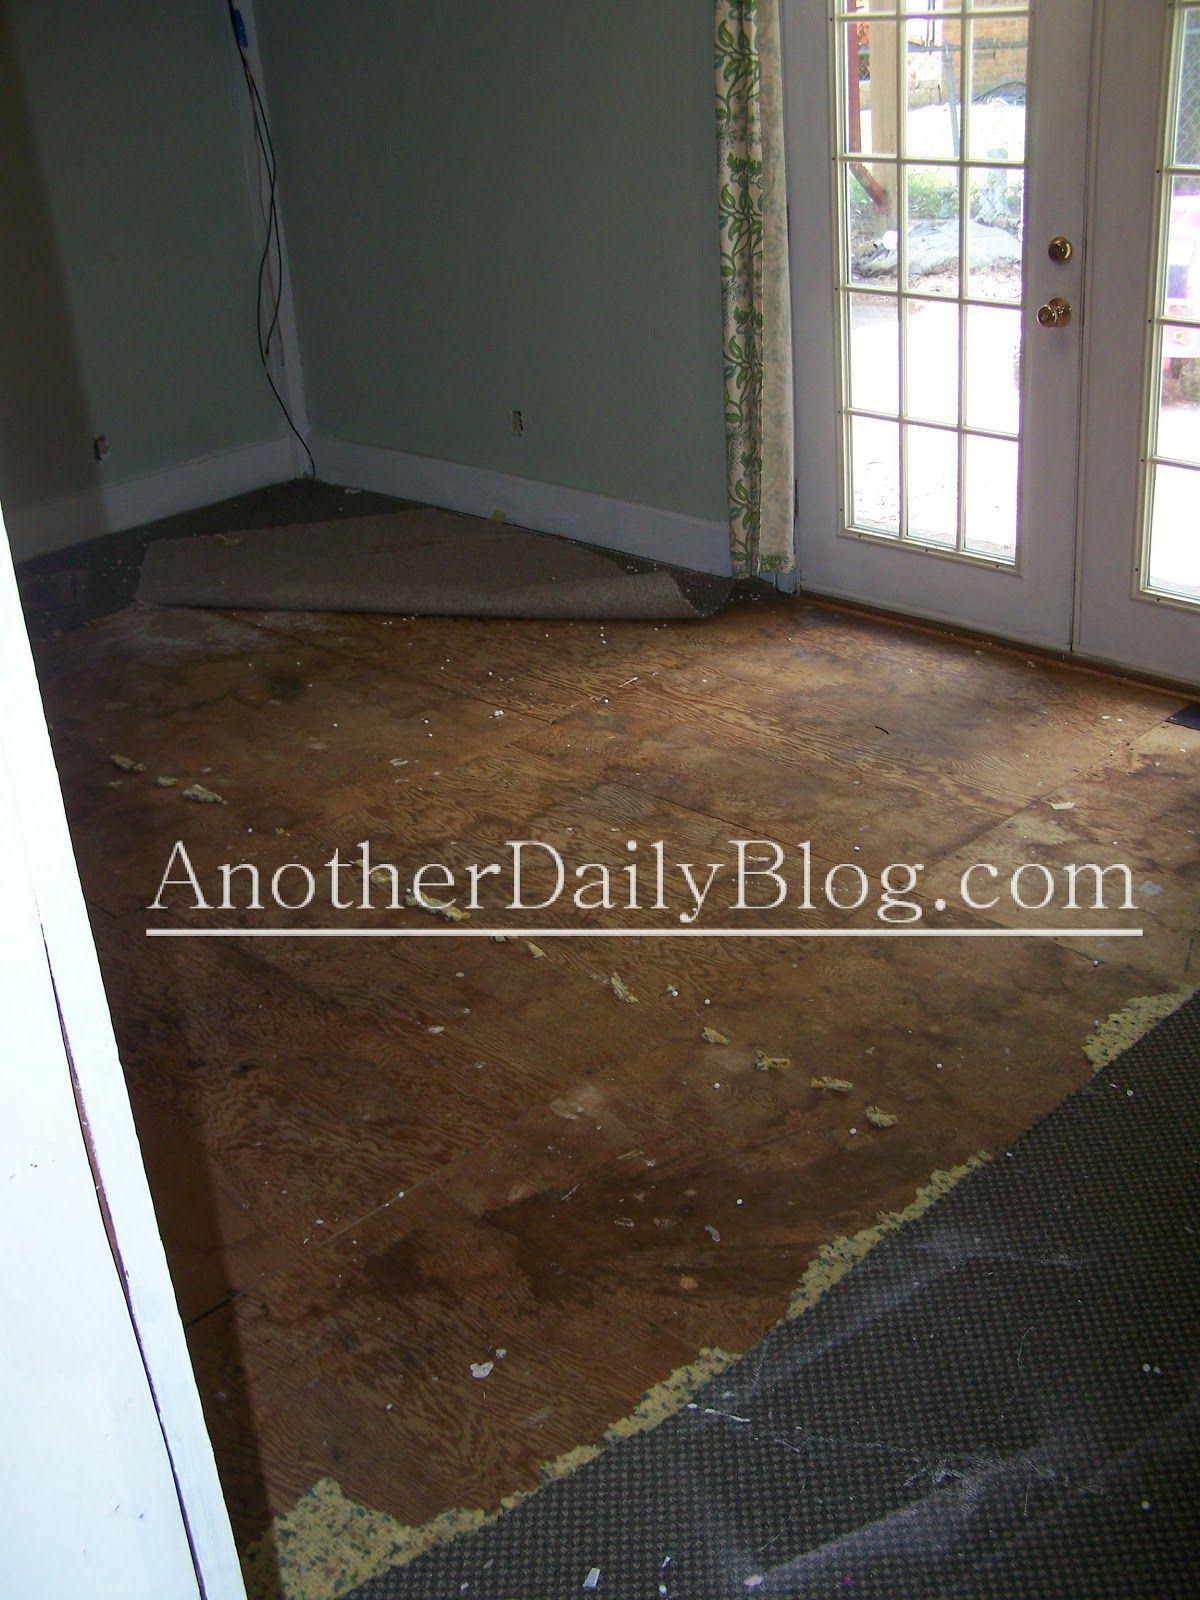 Another Daily Blog Diy How To Make Plywood Subfloor Look Like Wide Plank Hardwood Flooring Plywood Subfloor Wide Plank Hardwood Floors Flooring